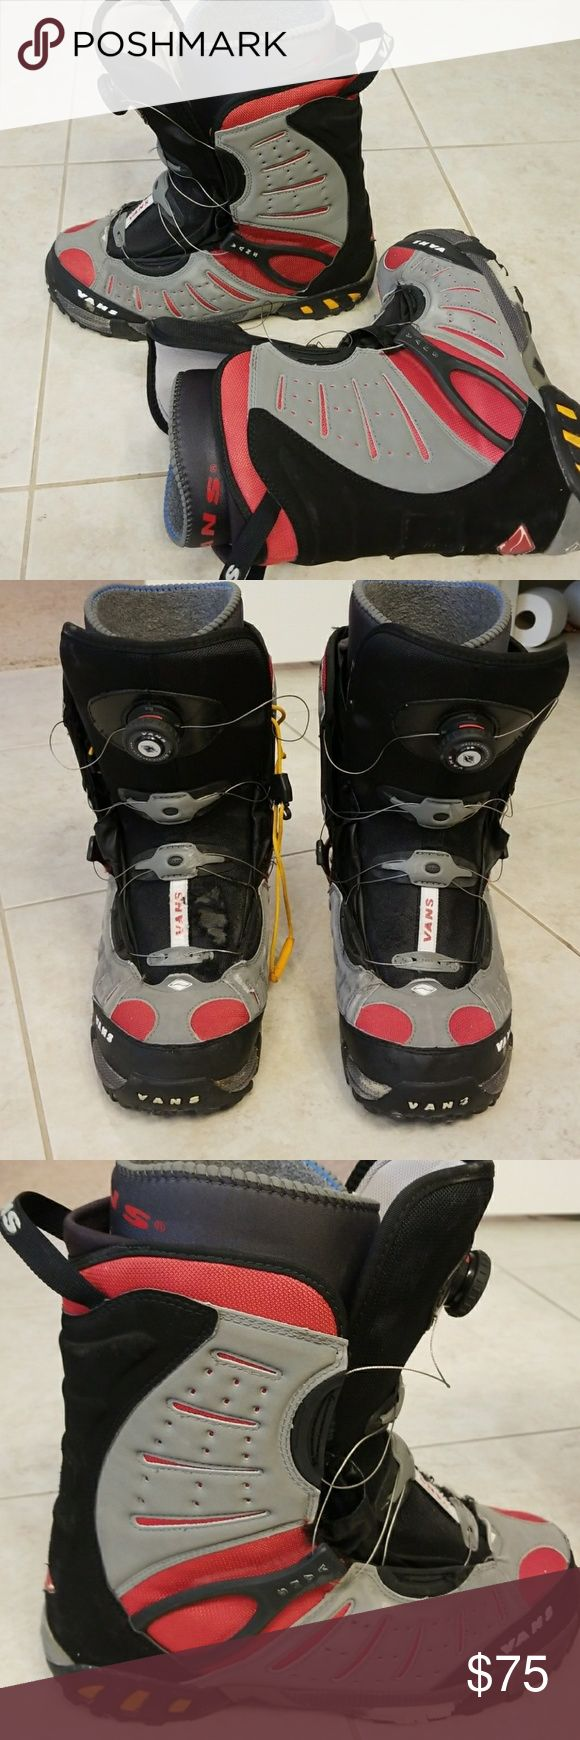 Vans Men's Snowboarding Boots Vans back grey and red men's snowboarding boys.  Definitely worn condition as seen in pics above.  Still a lot of wear in them.  Would be great for a new snowboarder. Size 12 Vans Shoes Boots